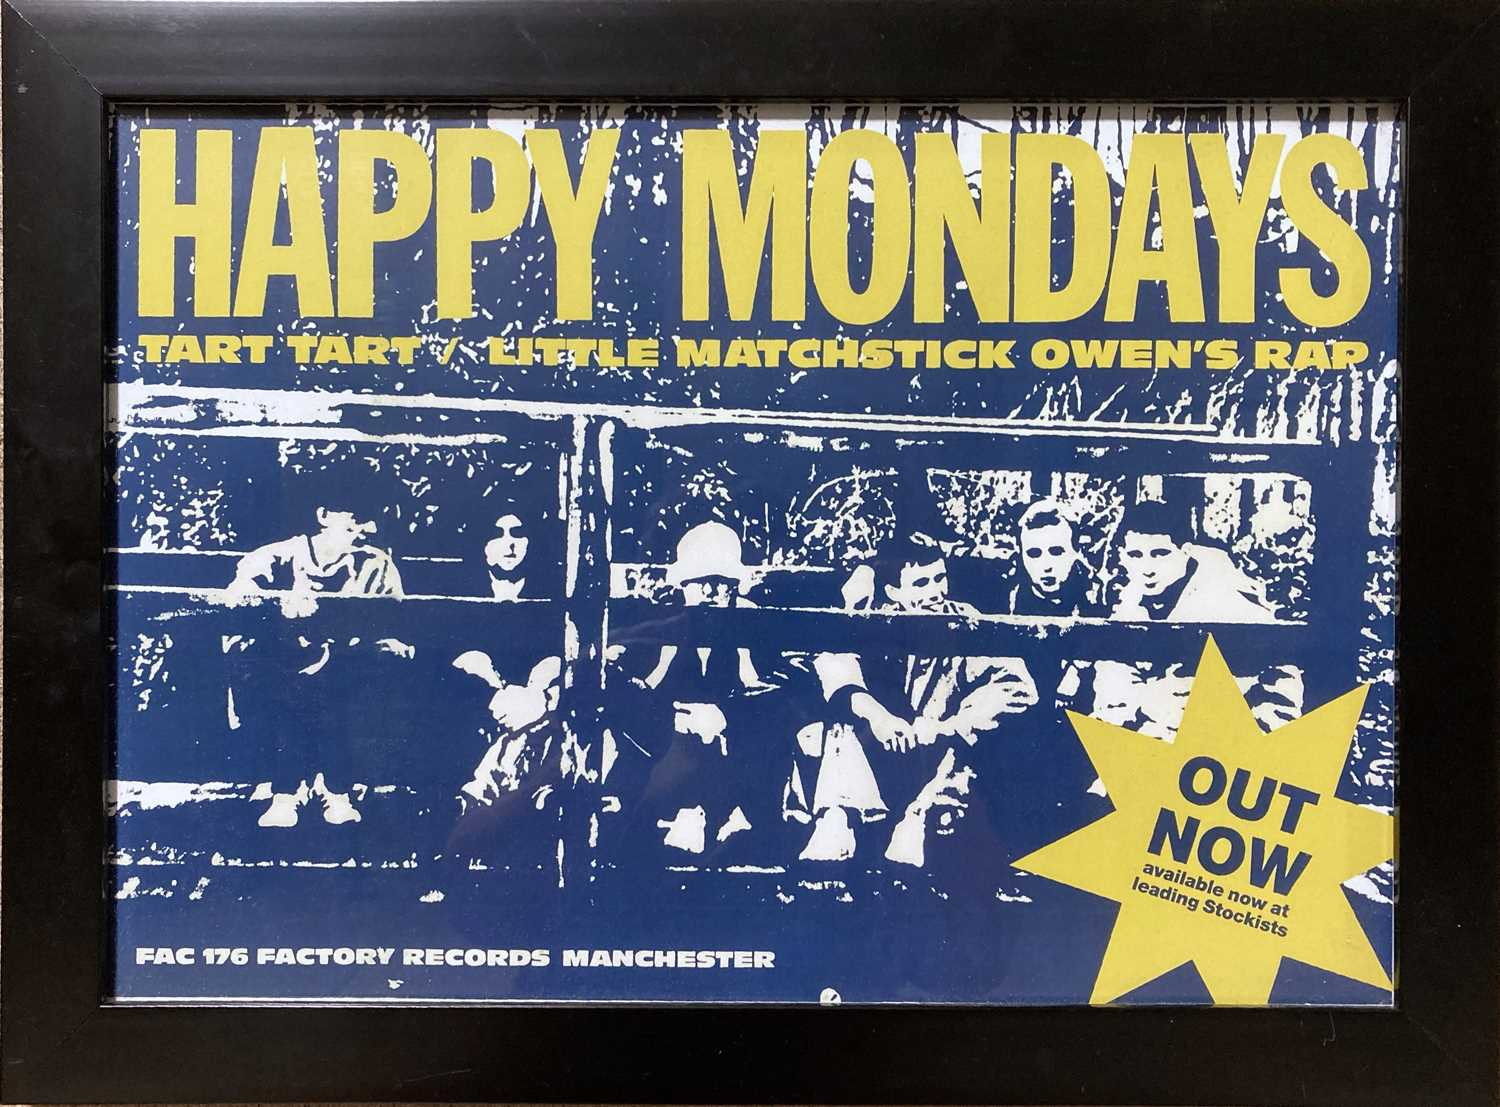 STONE ROSES / BLACK GRAPE POSTERS. - Image 3 of 5